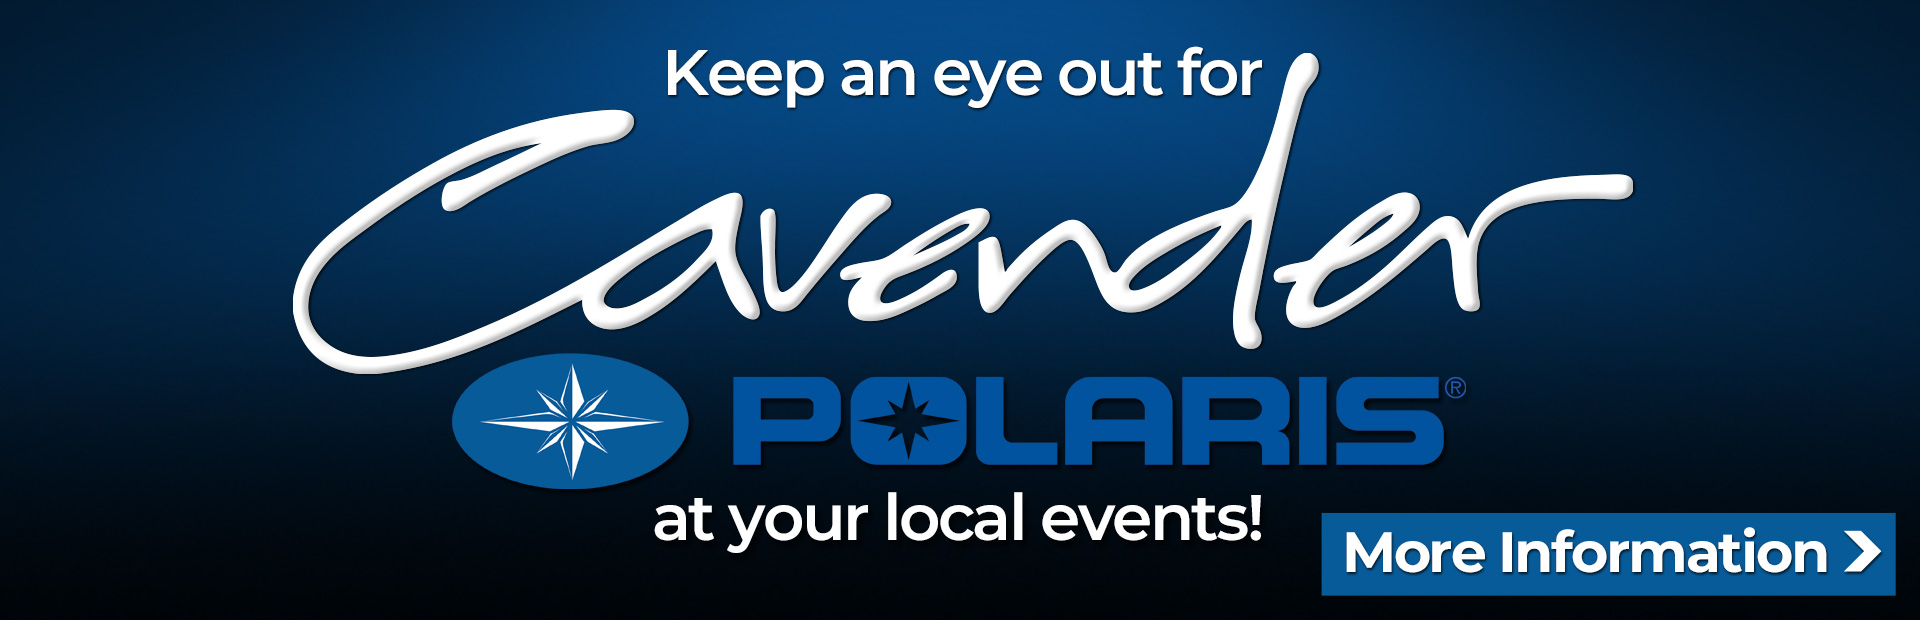 Keep an eye out for Cavender Polaris at your local events! Click here for more information.